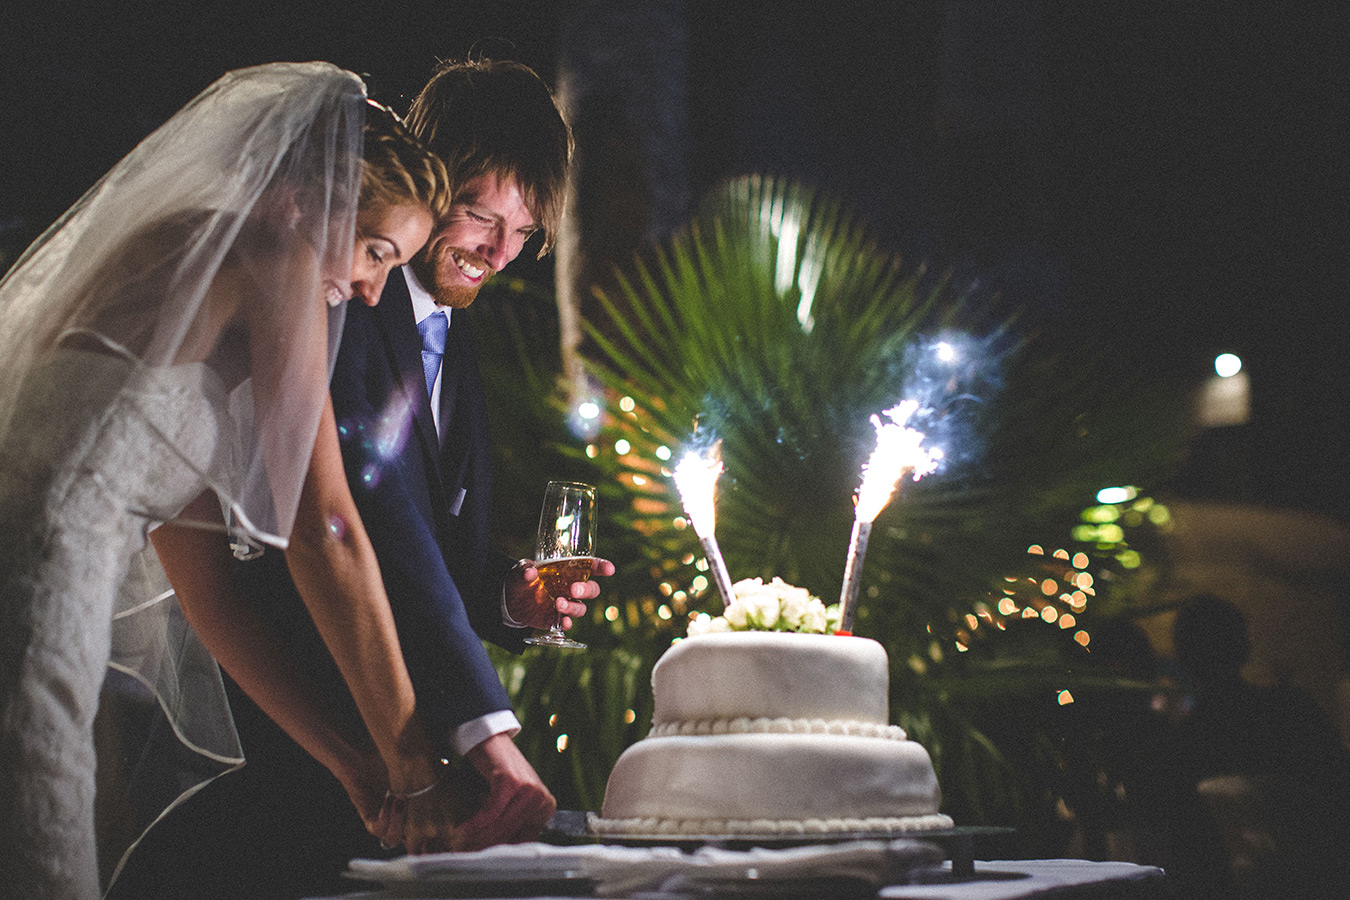 One of a set of images taken at this chic destination Wedding of Jenna & Nick. The stylish old town of Dubrovnik, Croatia.  The couple cut the cake.  Photography by Matt Porteous